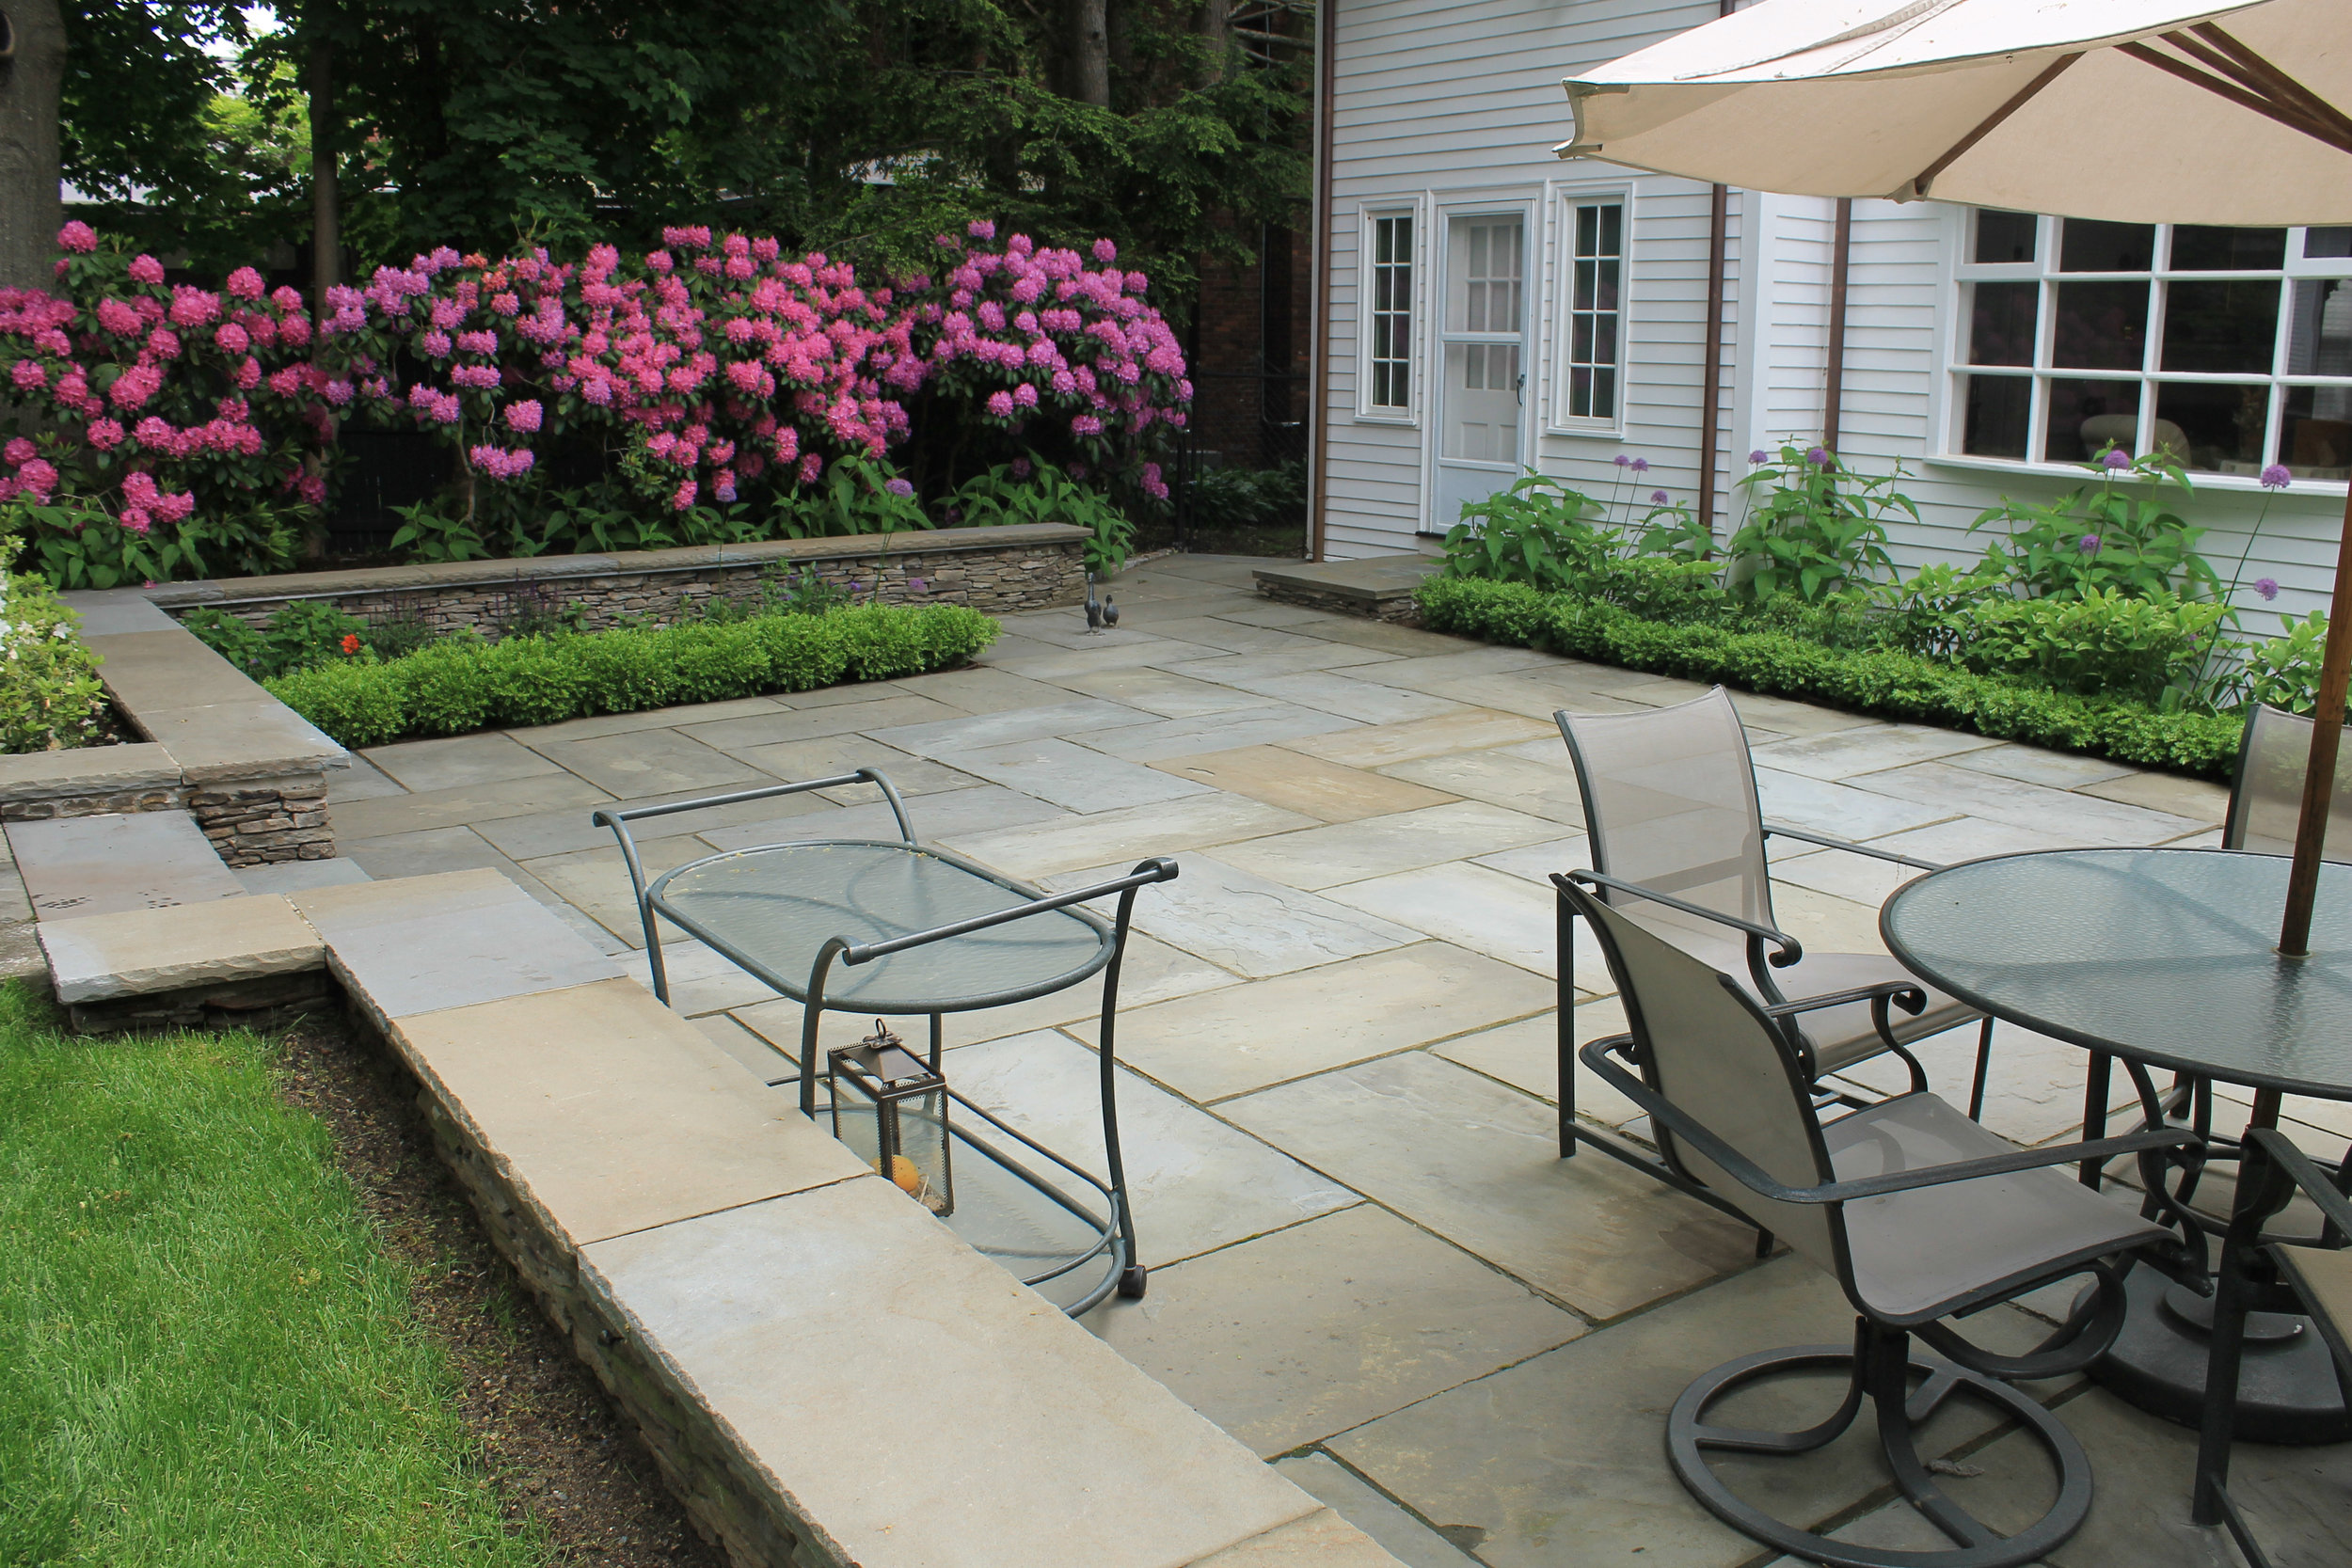 Brookline, MA bluestone patio with retaining wall